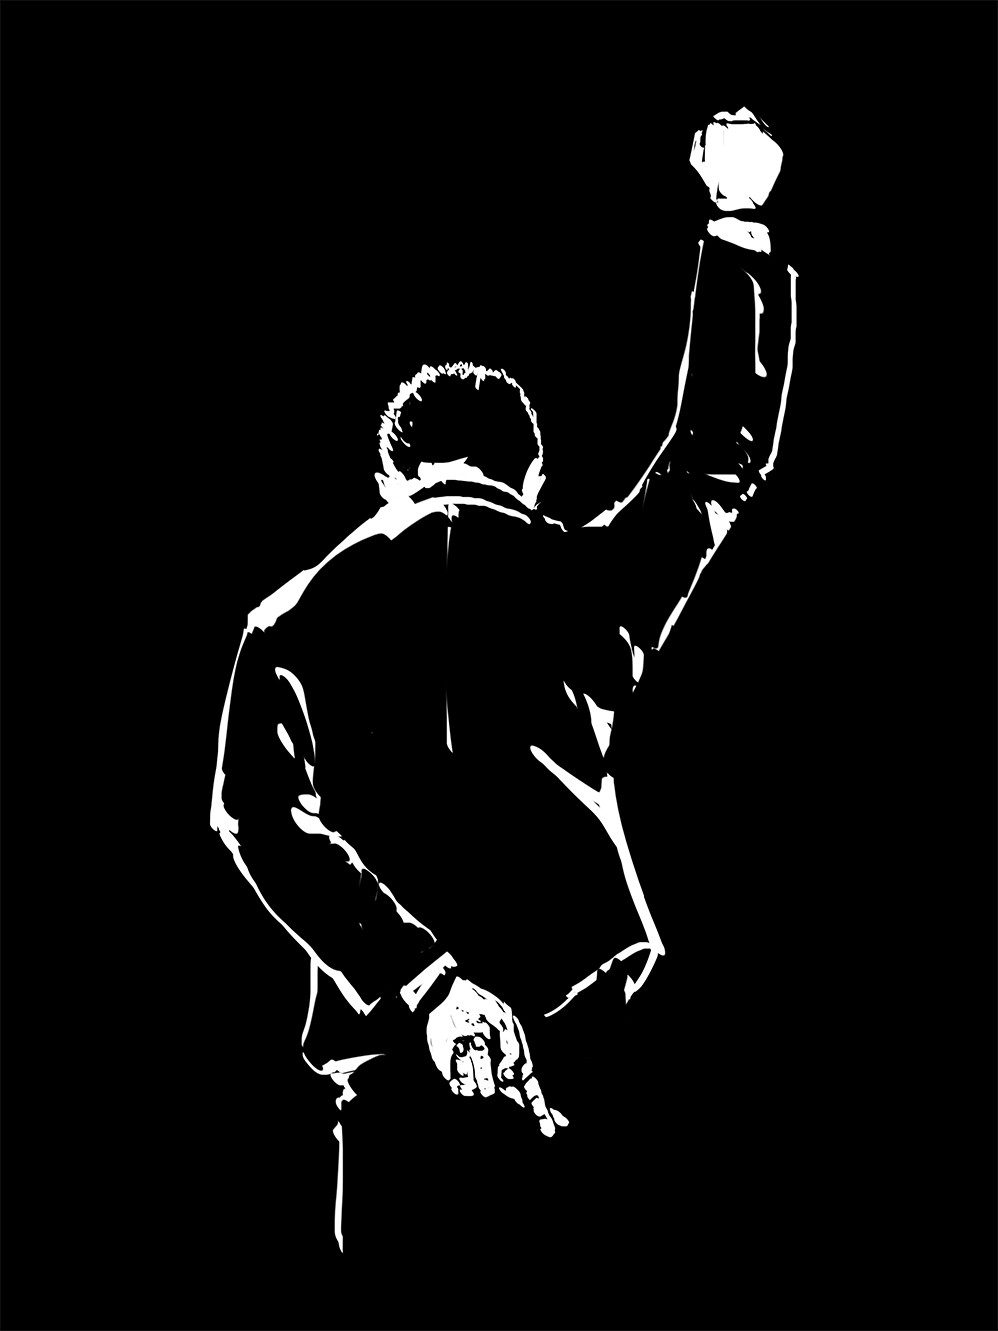 Illustration of a businessman bowing, making a Black Power fist but crossing his fingers behind his back.